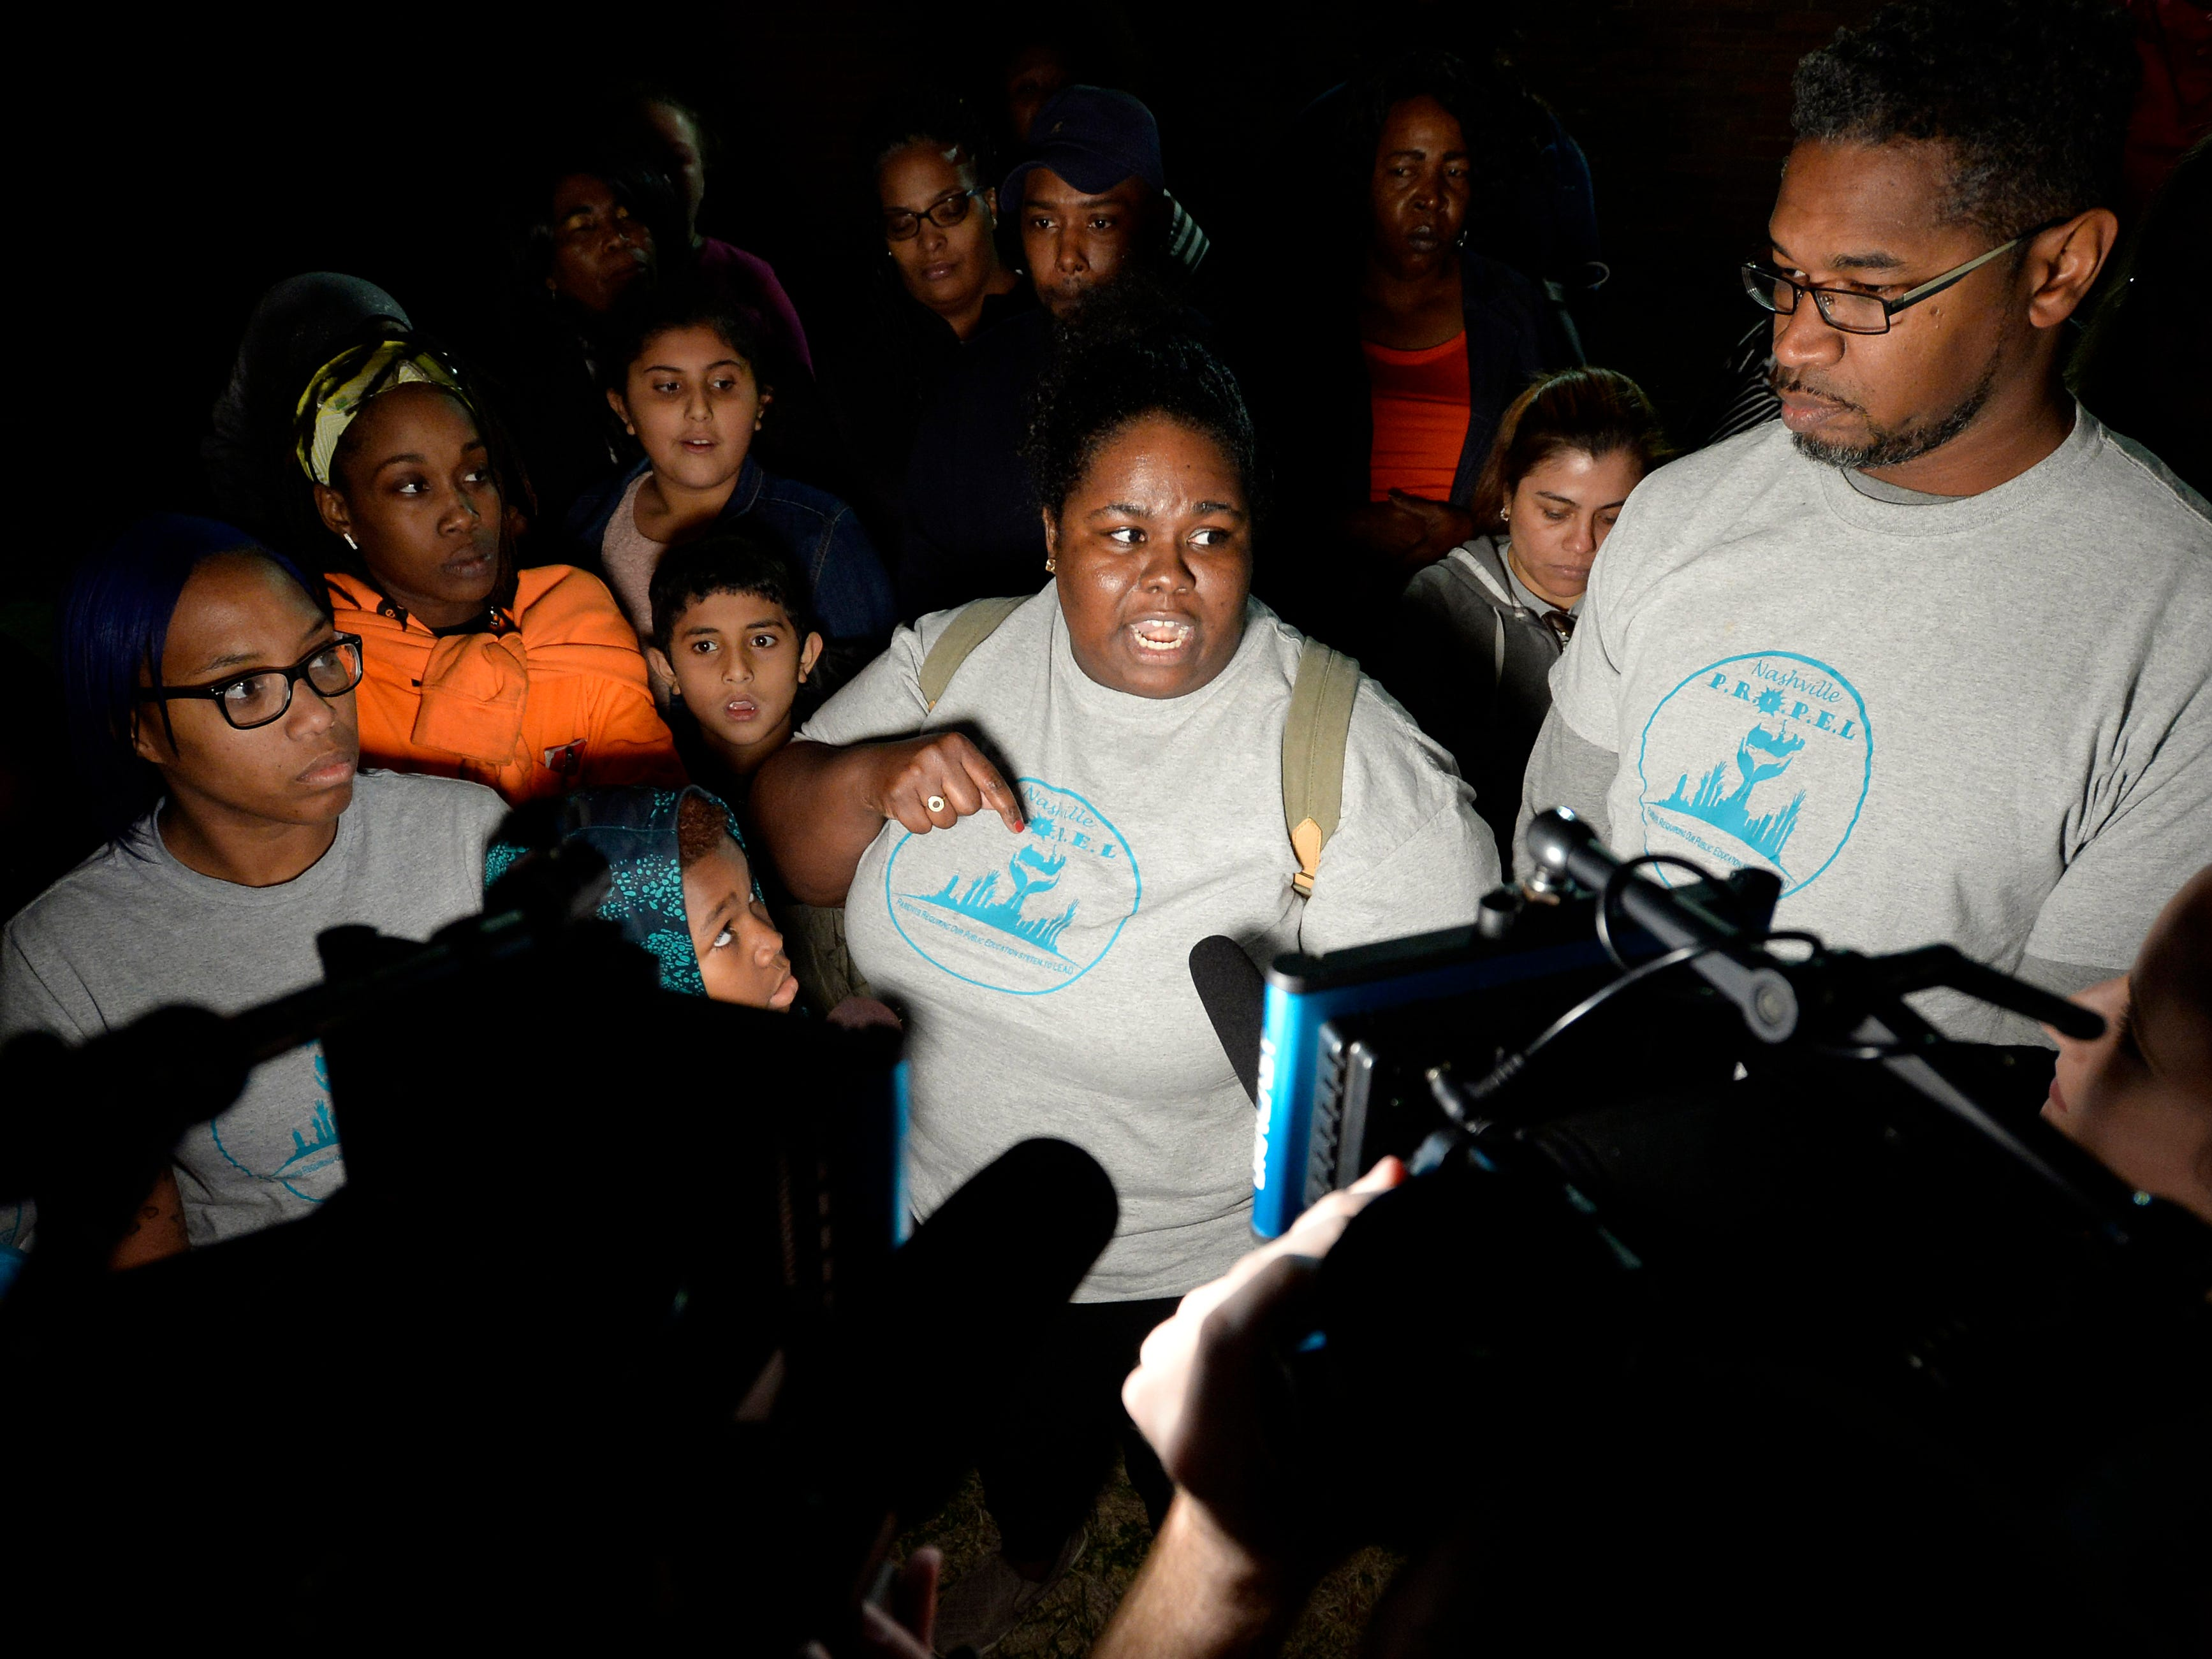 Liz Lyons, center, speaks outside the Metro Nashville Public School building explaining why a group of parents walked out of the Metropolitan Nashville Public Board of Education board meeting on Tuesday, Jan. 8, 2019, in Nashville, Tenn. Lyons said because parents became angry when board members did not talk about the quality of education their children need.